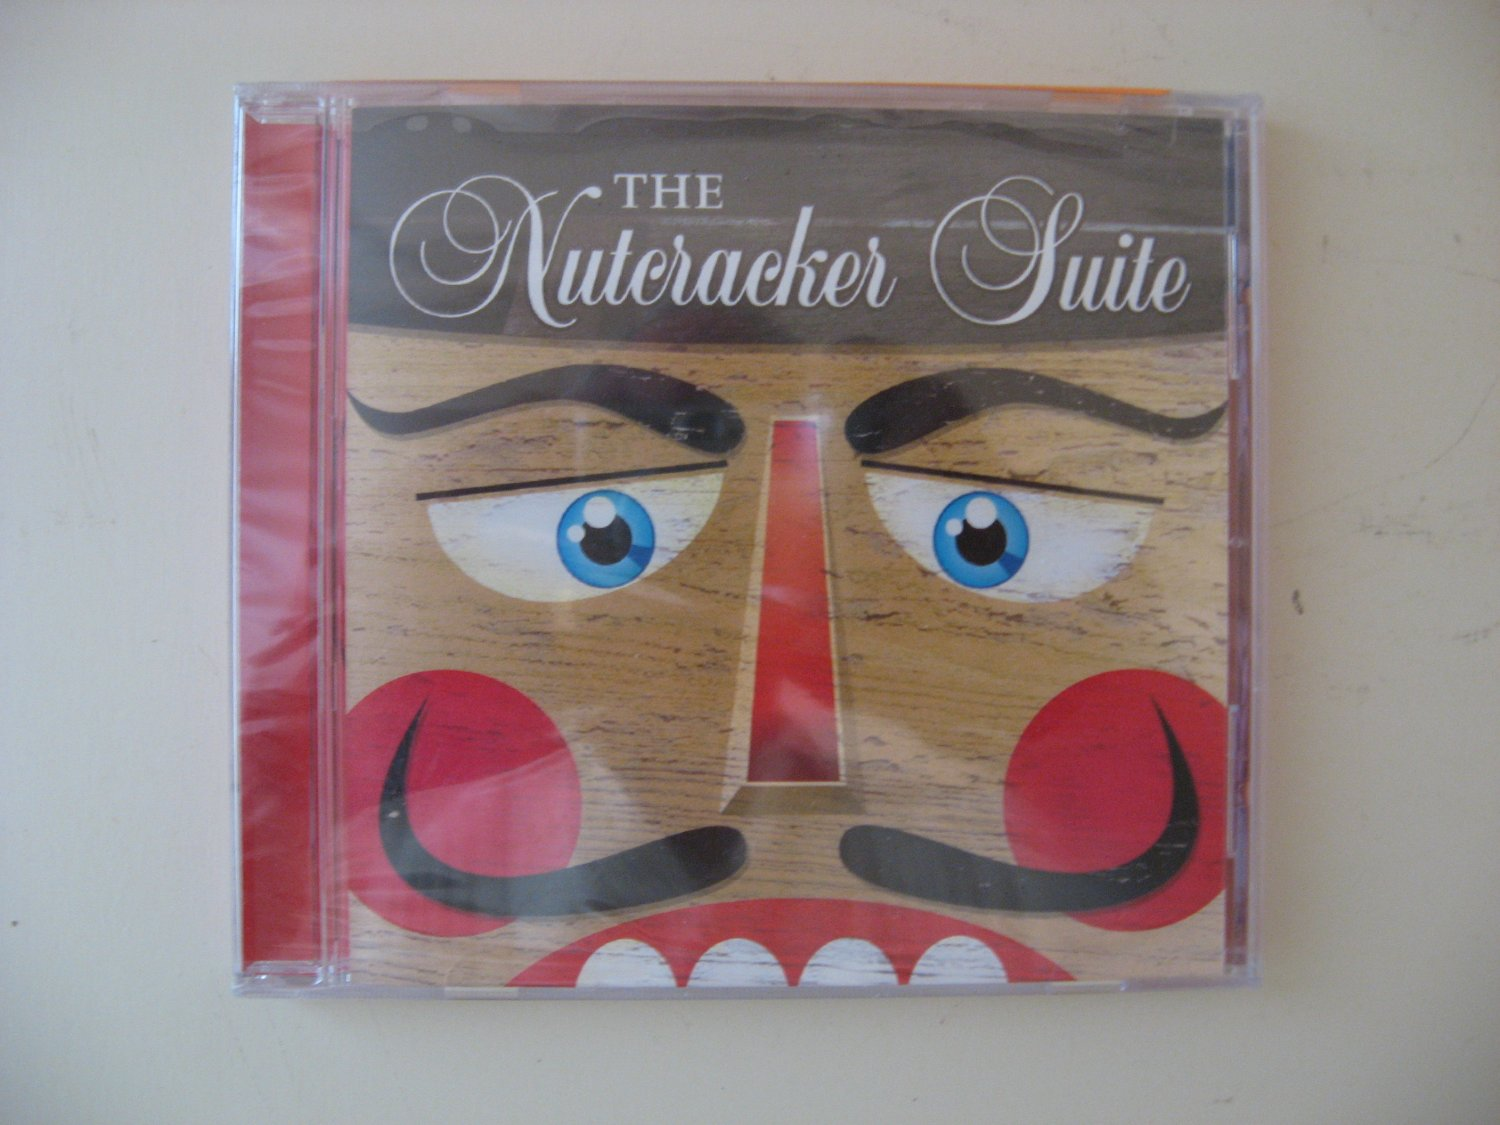 The Nutcracker Suite - Factory Sealed! - 2004  (CD)